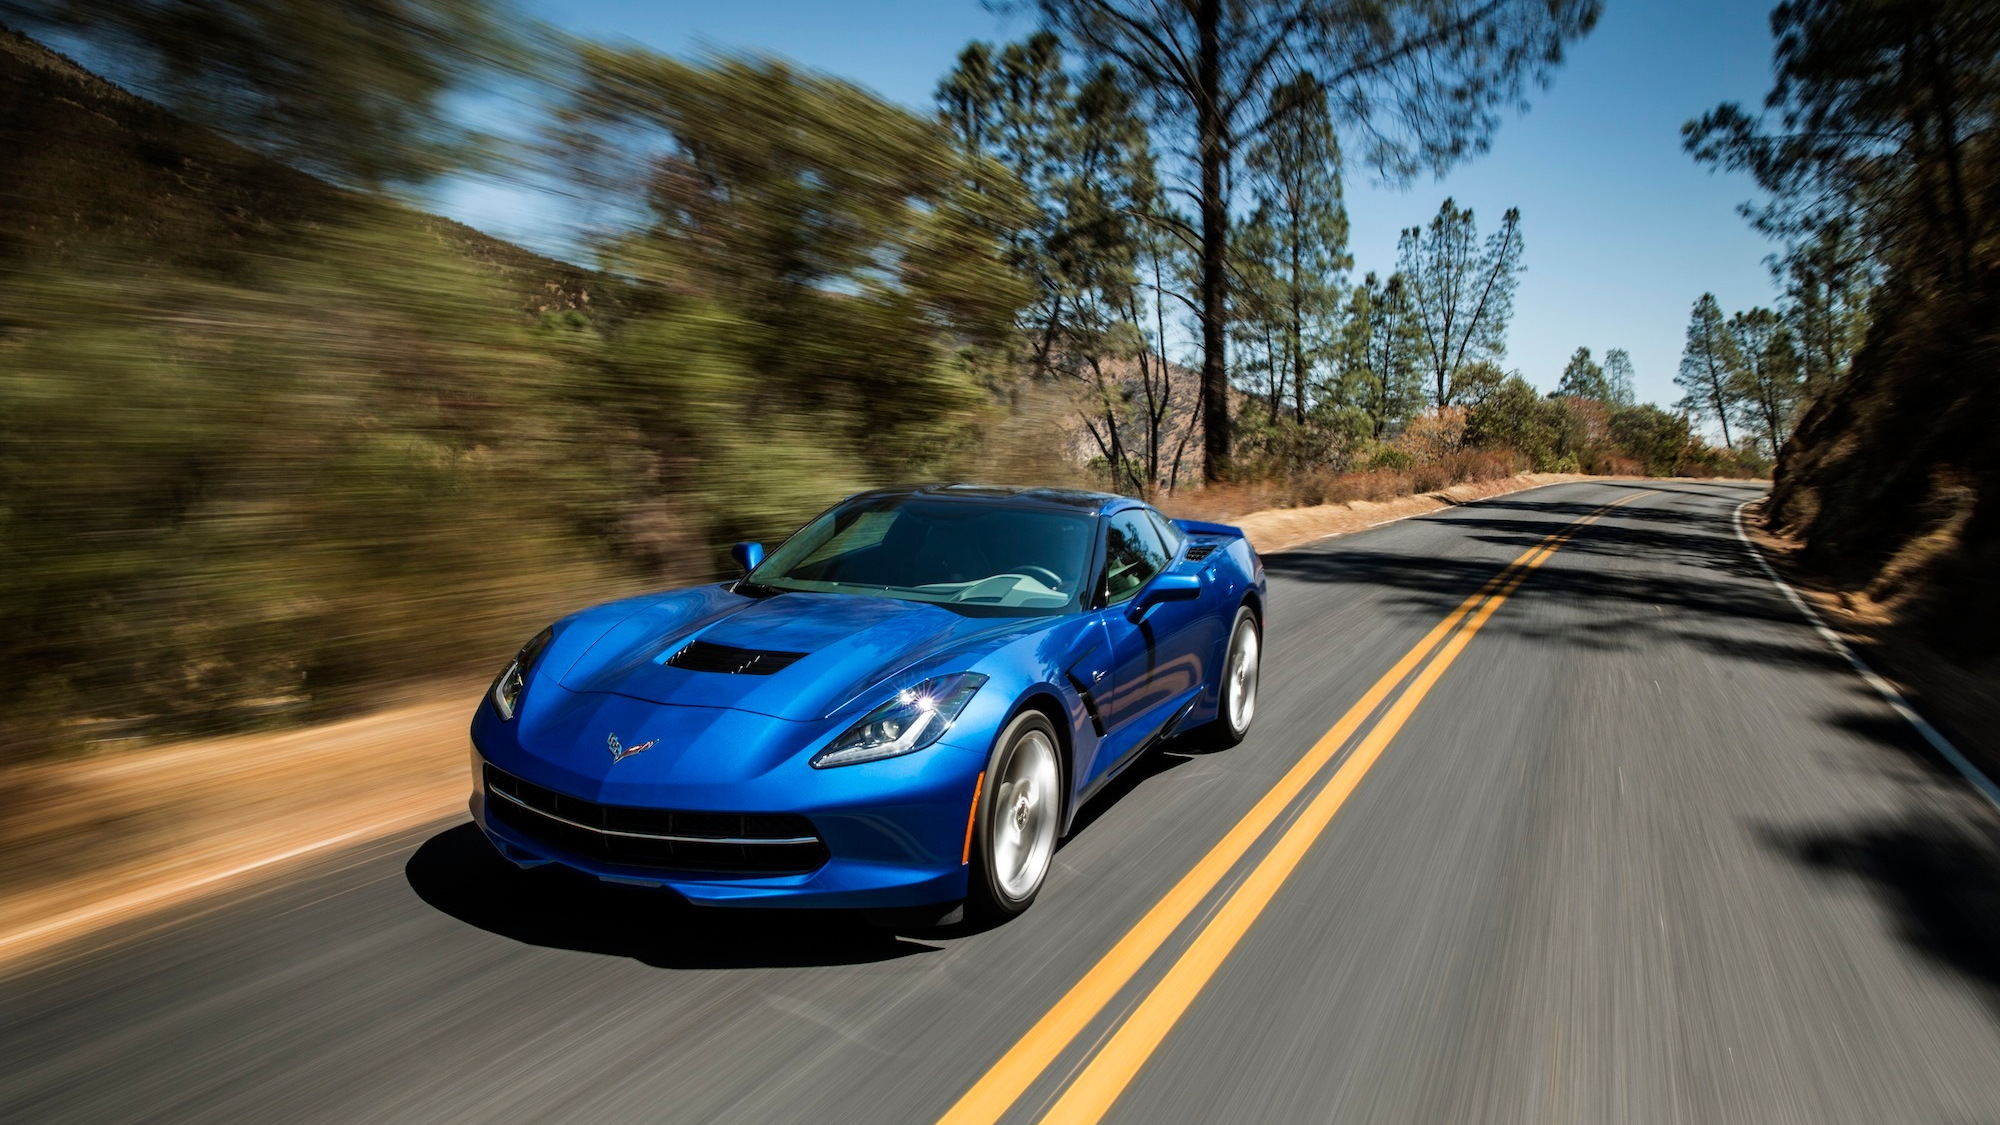 2014 Chevrolet Corvette Stingray first drive